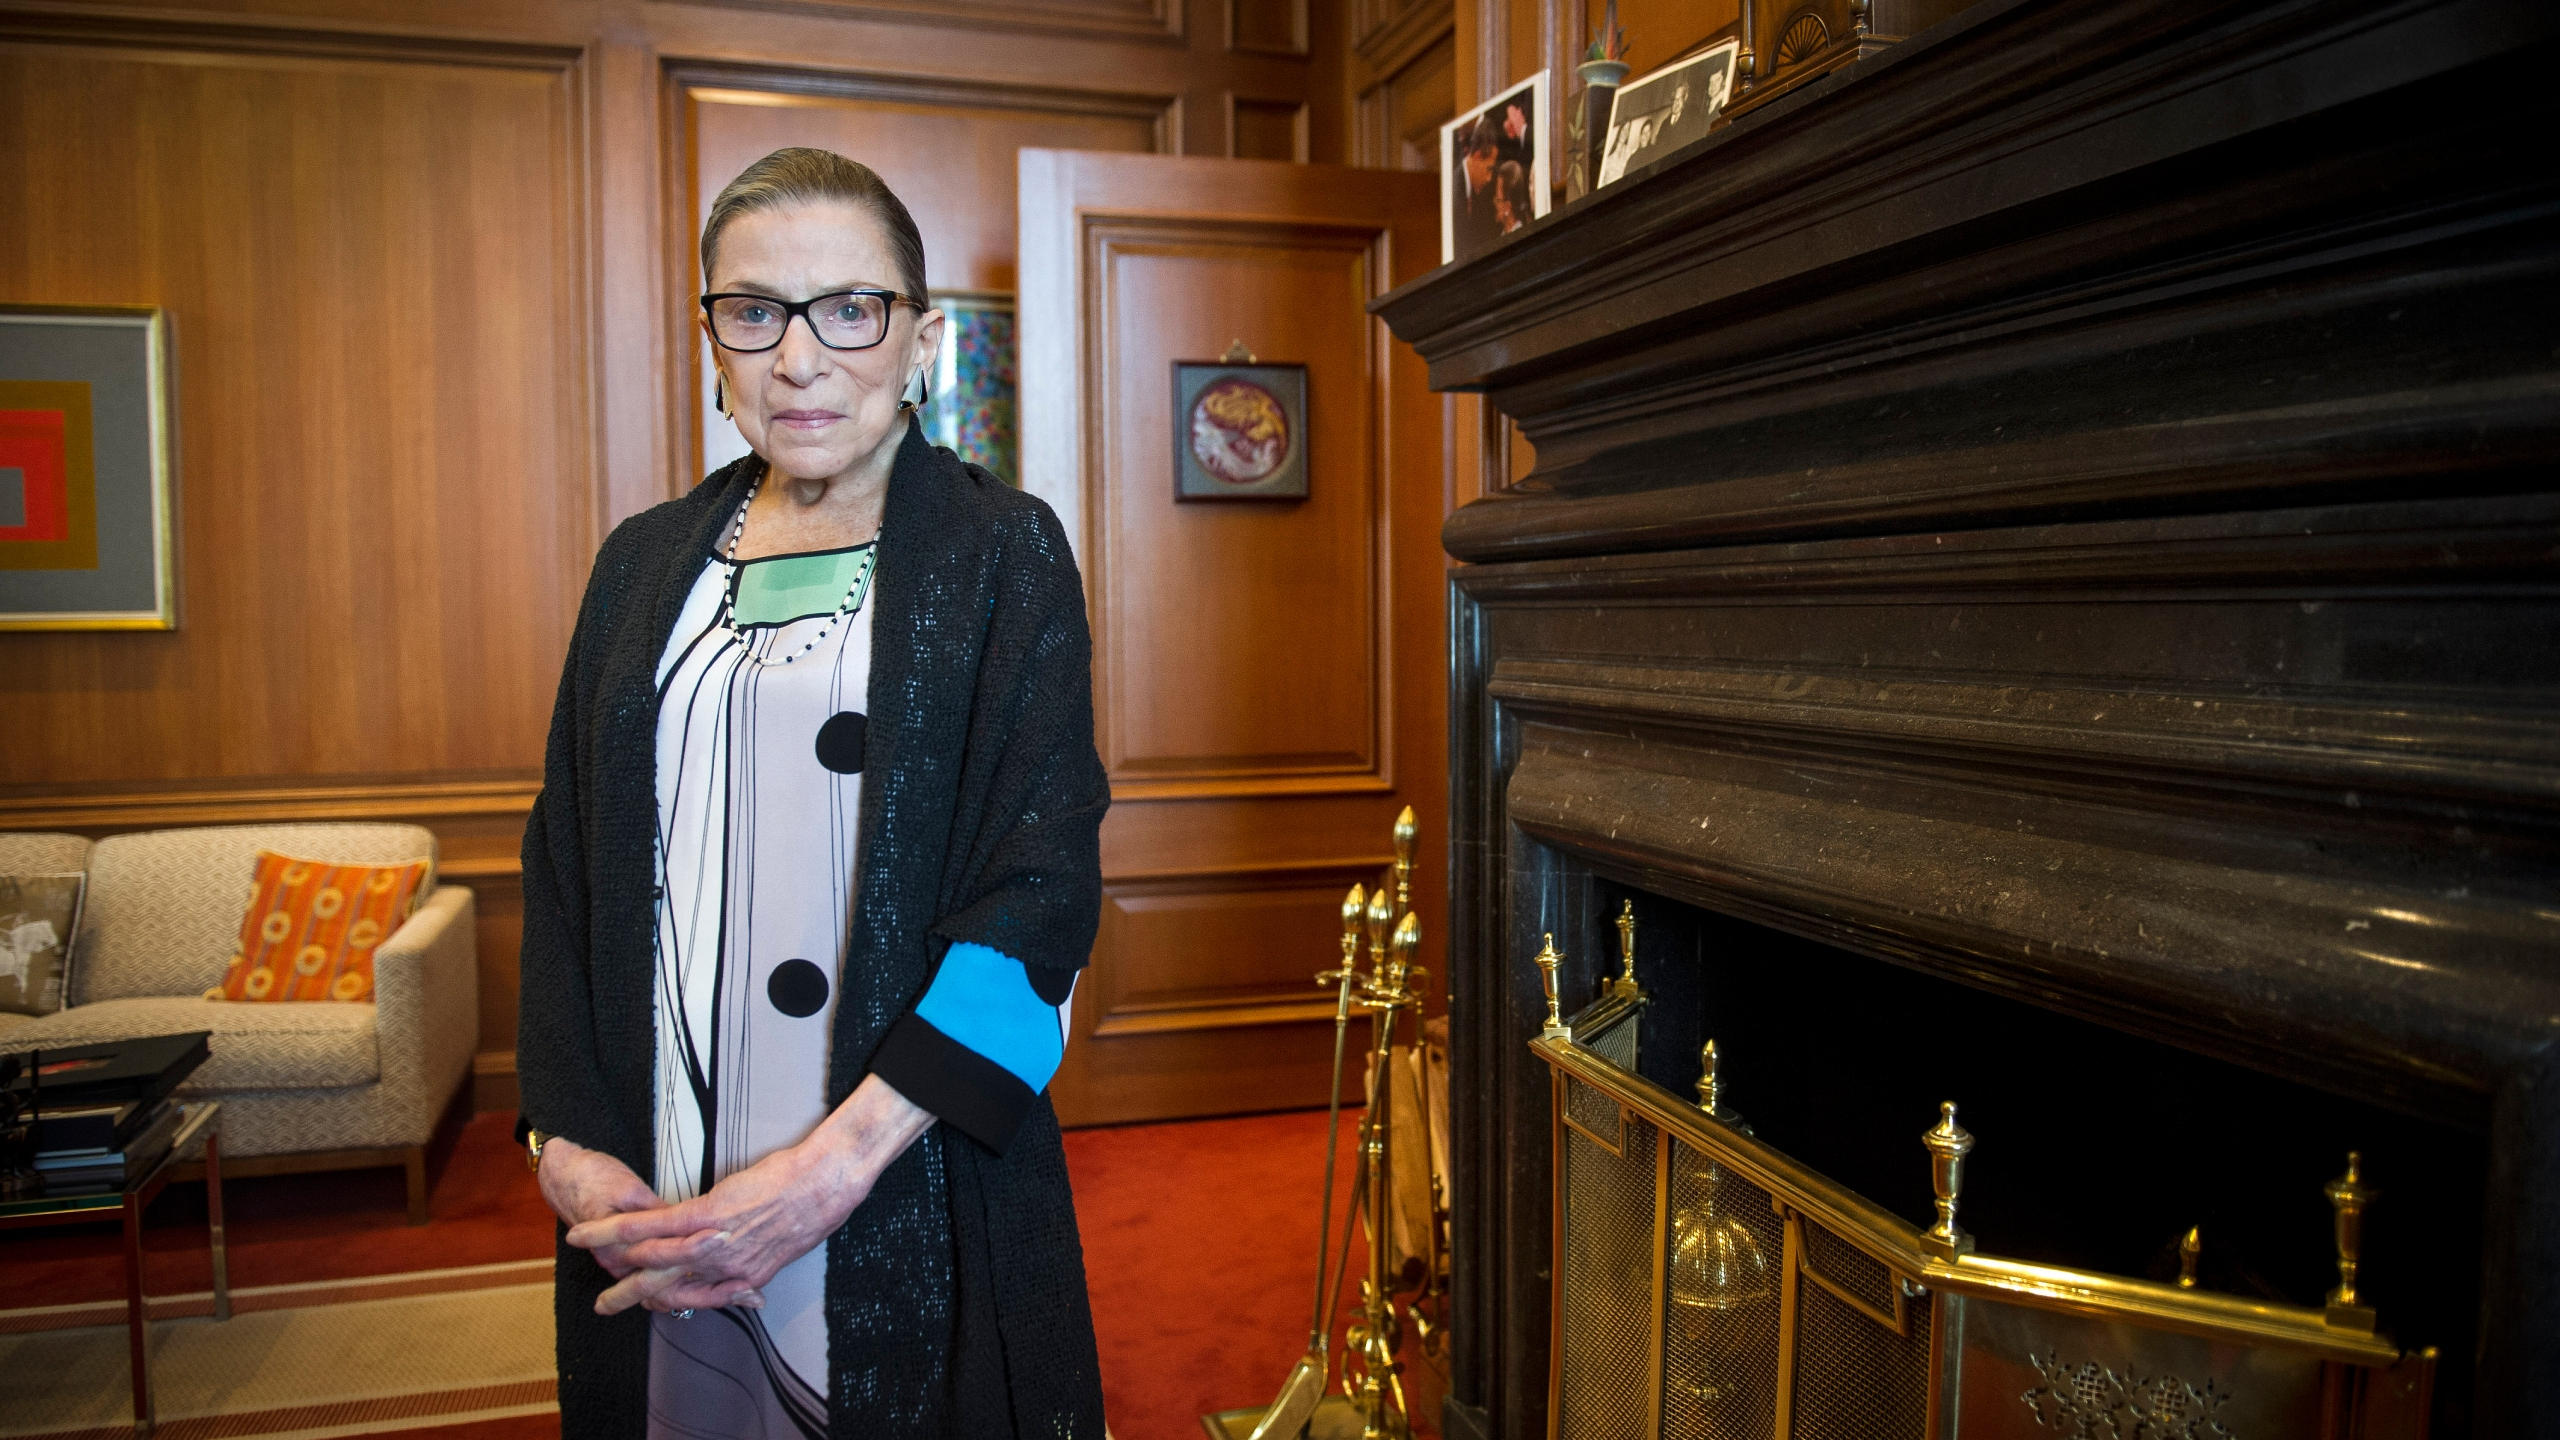 Associate Justice Ruth Bader Ginsburg is seen in her chambers in at the Supreme Court in Washington on July 31, 2014. (Cliff Owen / Associated Press)